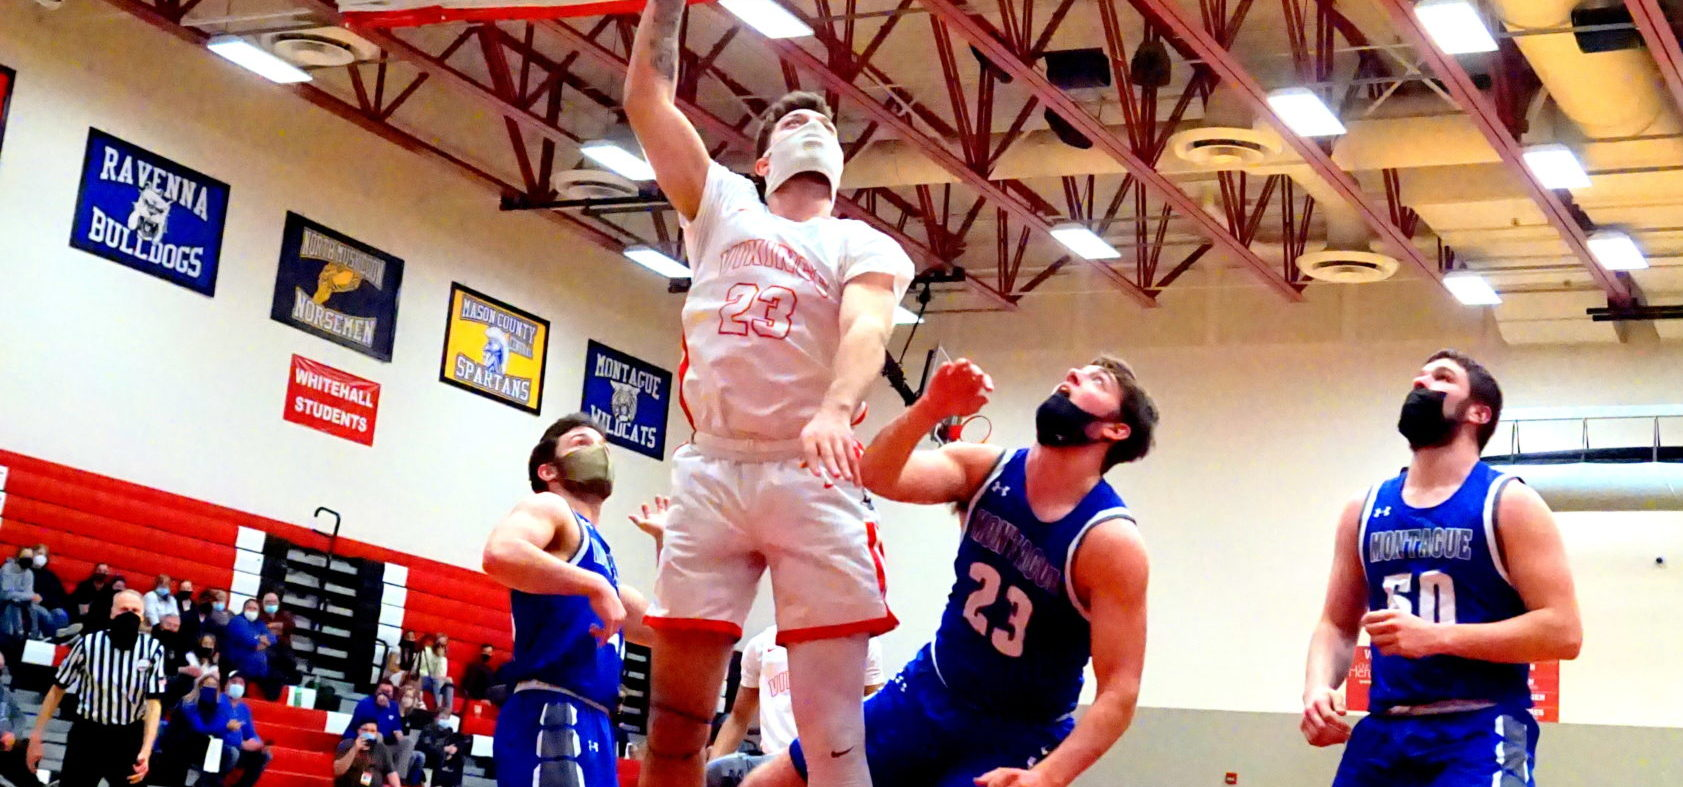 Whitehall boys suffocate Montague with stingy defense, roll to a 46-27 victory and a berth in the D2 district title game